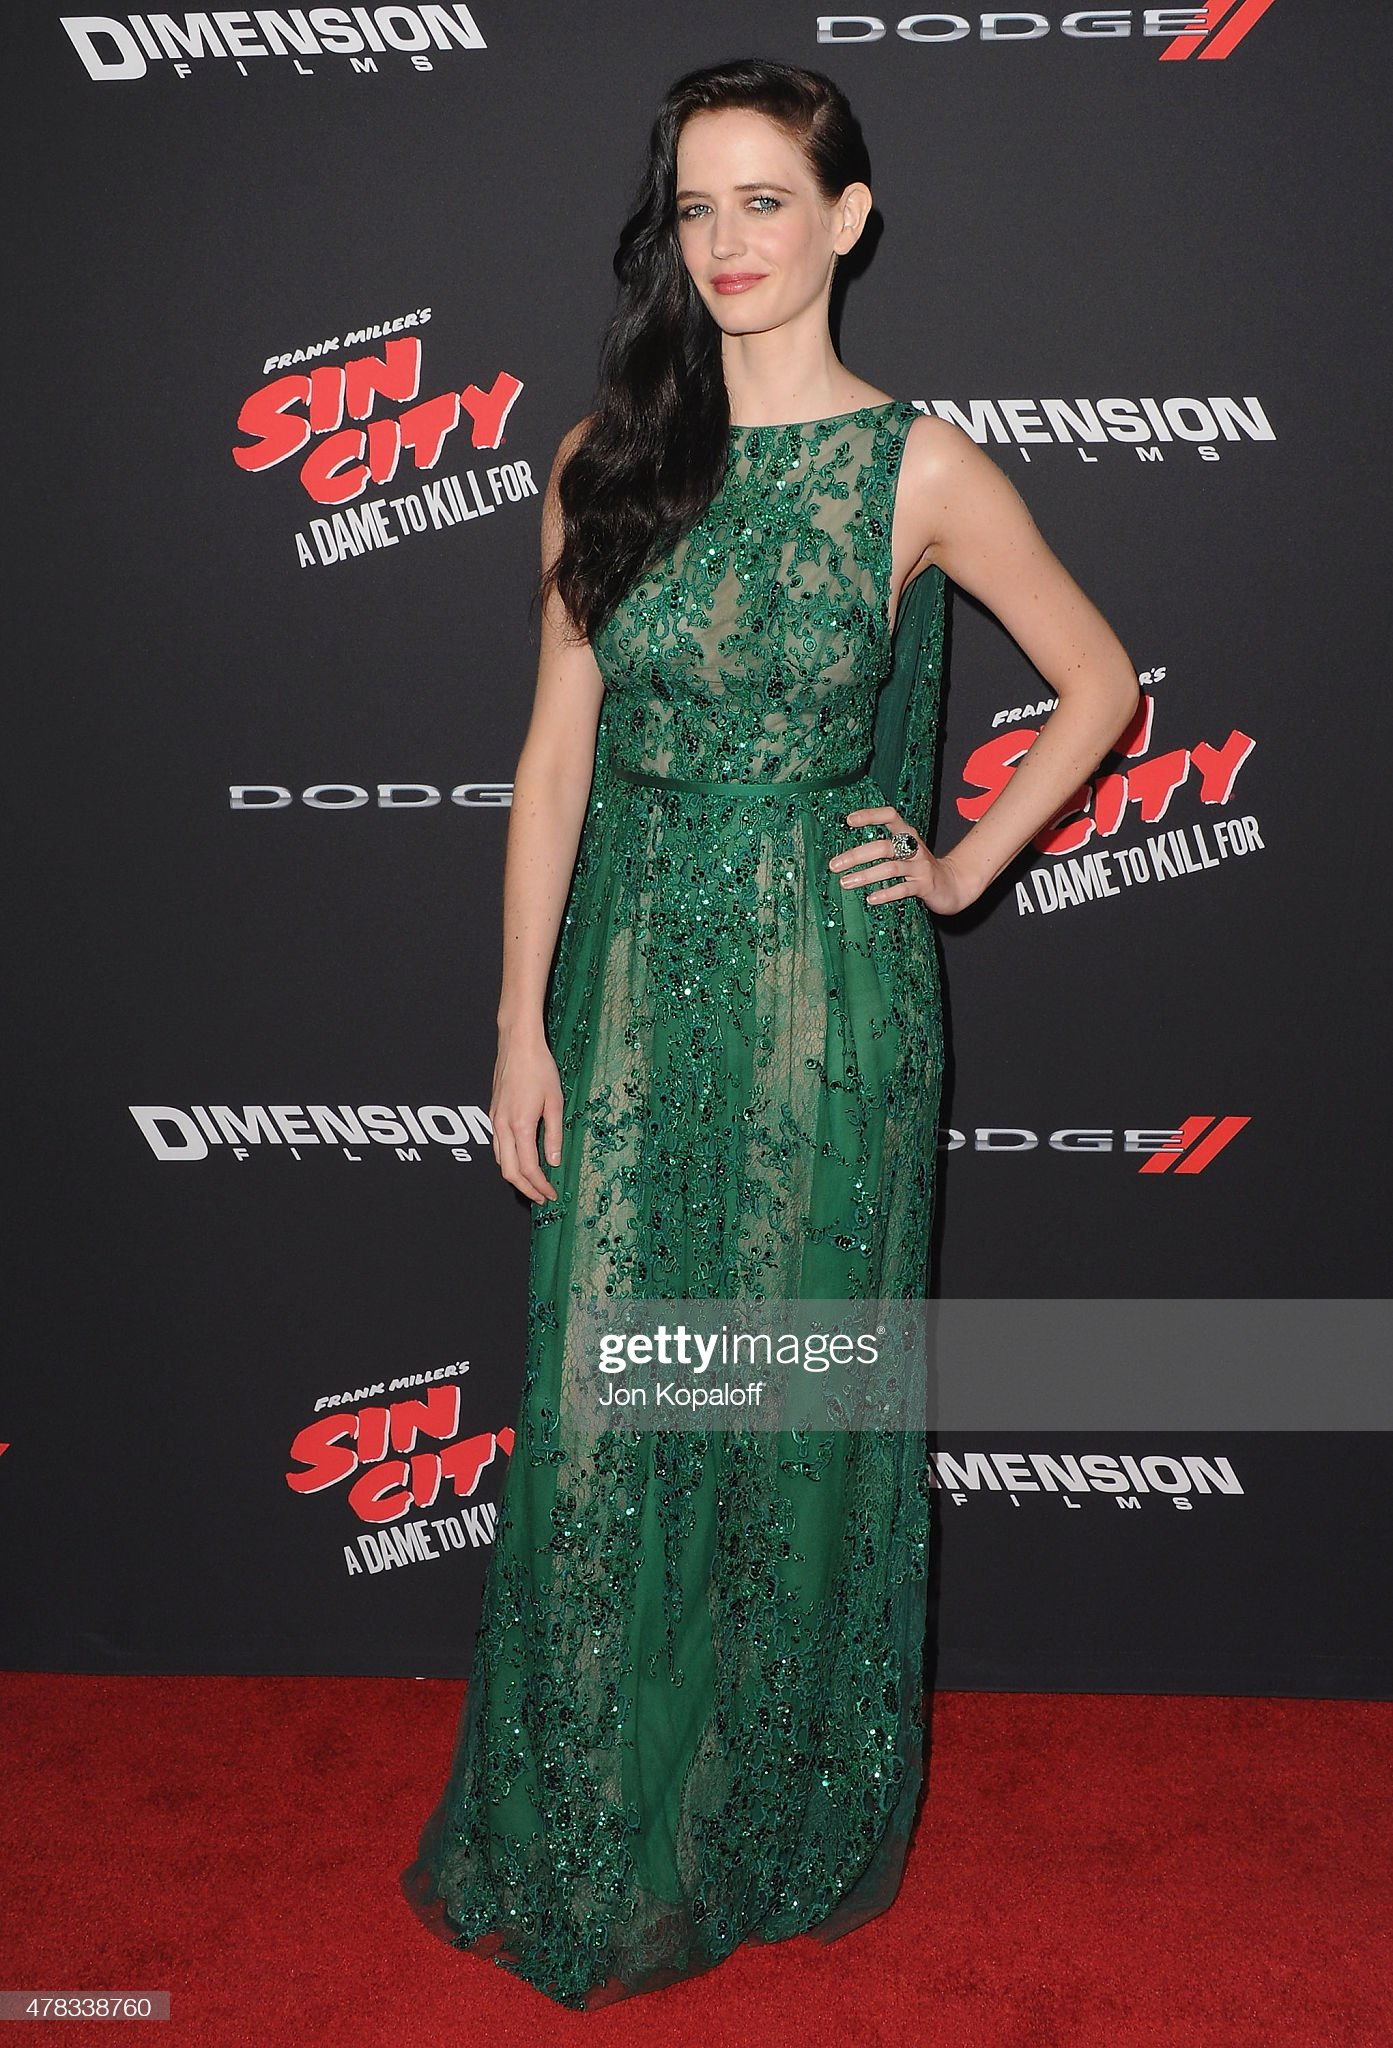 ¿Cuánto mide Eva Green? - Altura - Real height Actress-eva-green-arrives-at-the-los-angeles-premiere-sin-city-a-dame-picture-id478338760?s=2048x2048